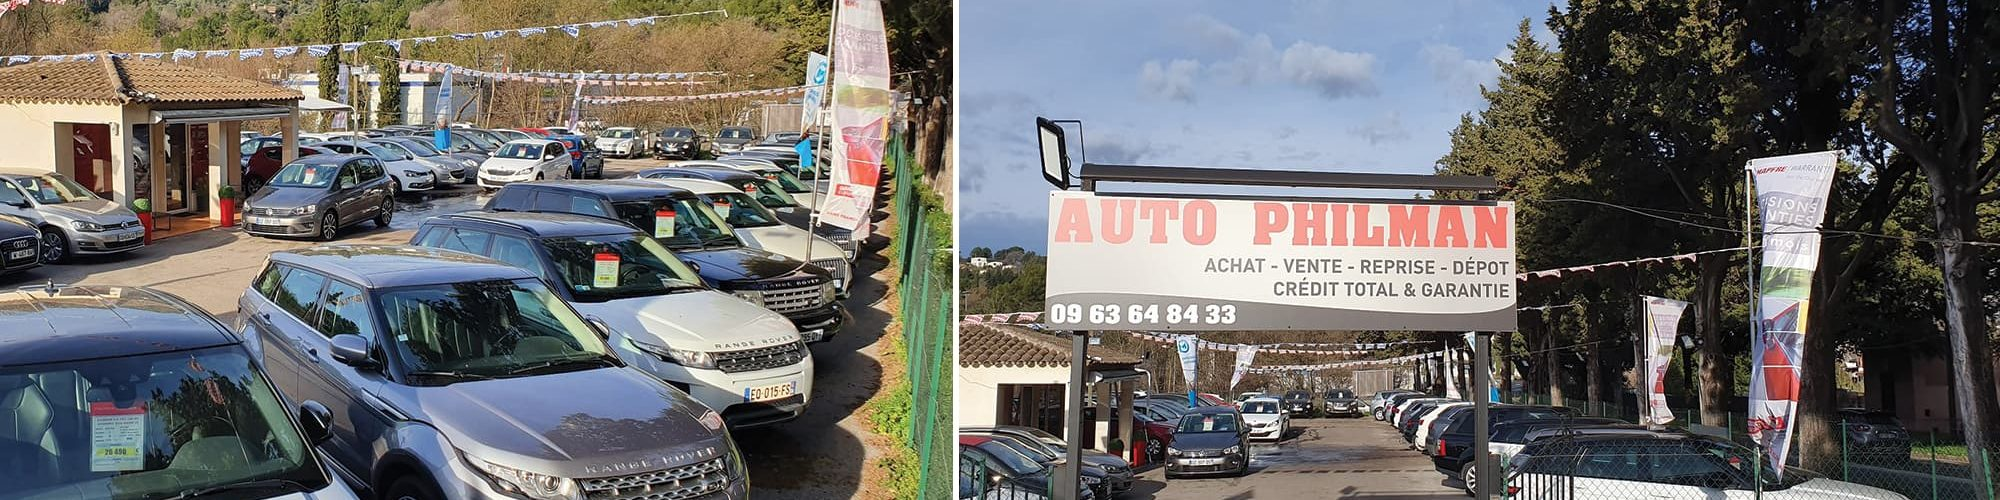 Concessionnaire auto multimarques Grasse